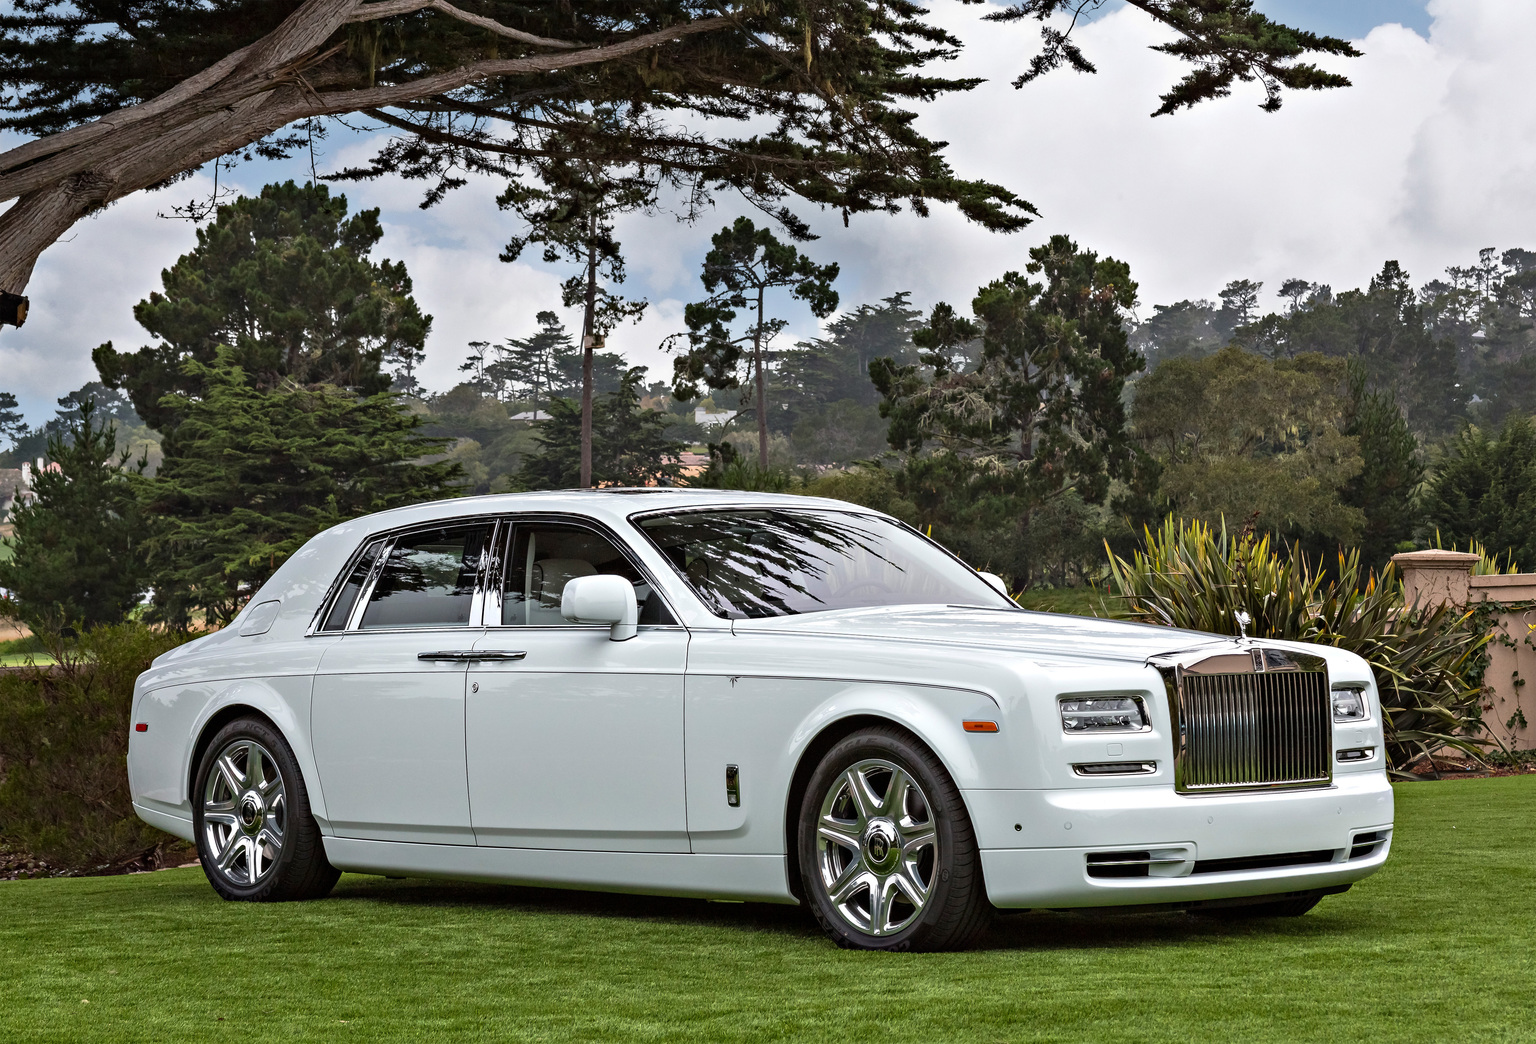 2013 Rolls-Royce Collection Phantom